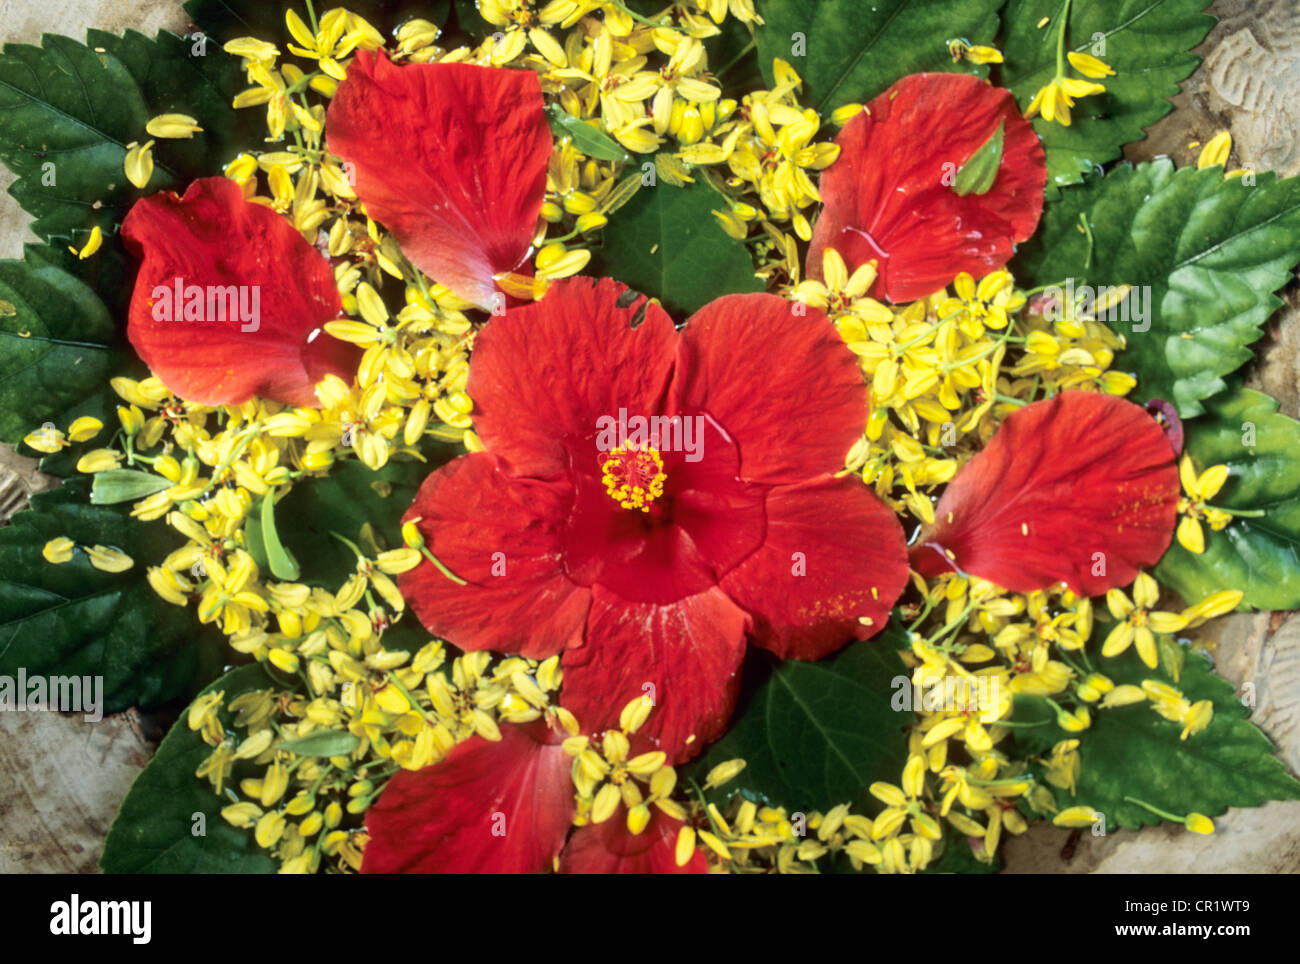 Mauritius Flower Arrangement Based On Hibiscus Flower Stock Photo